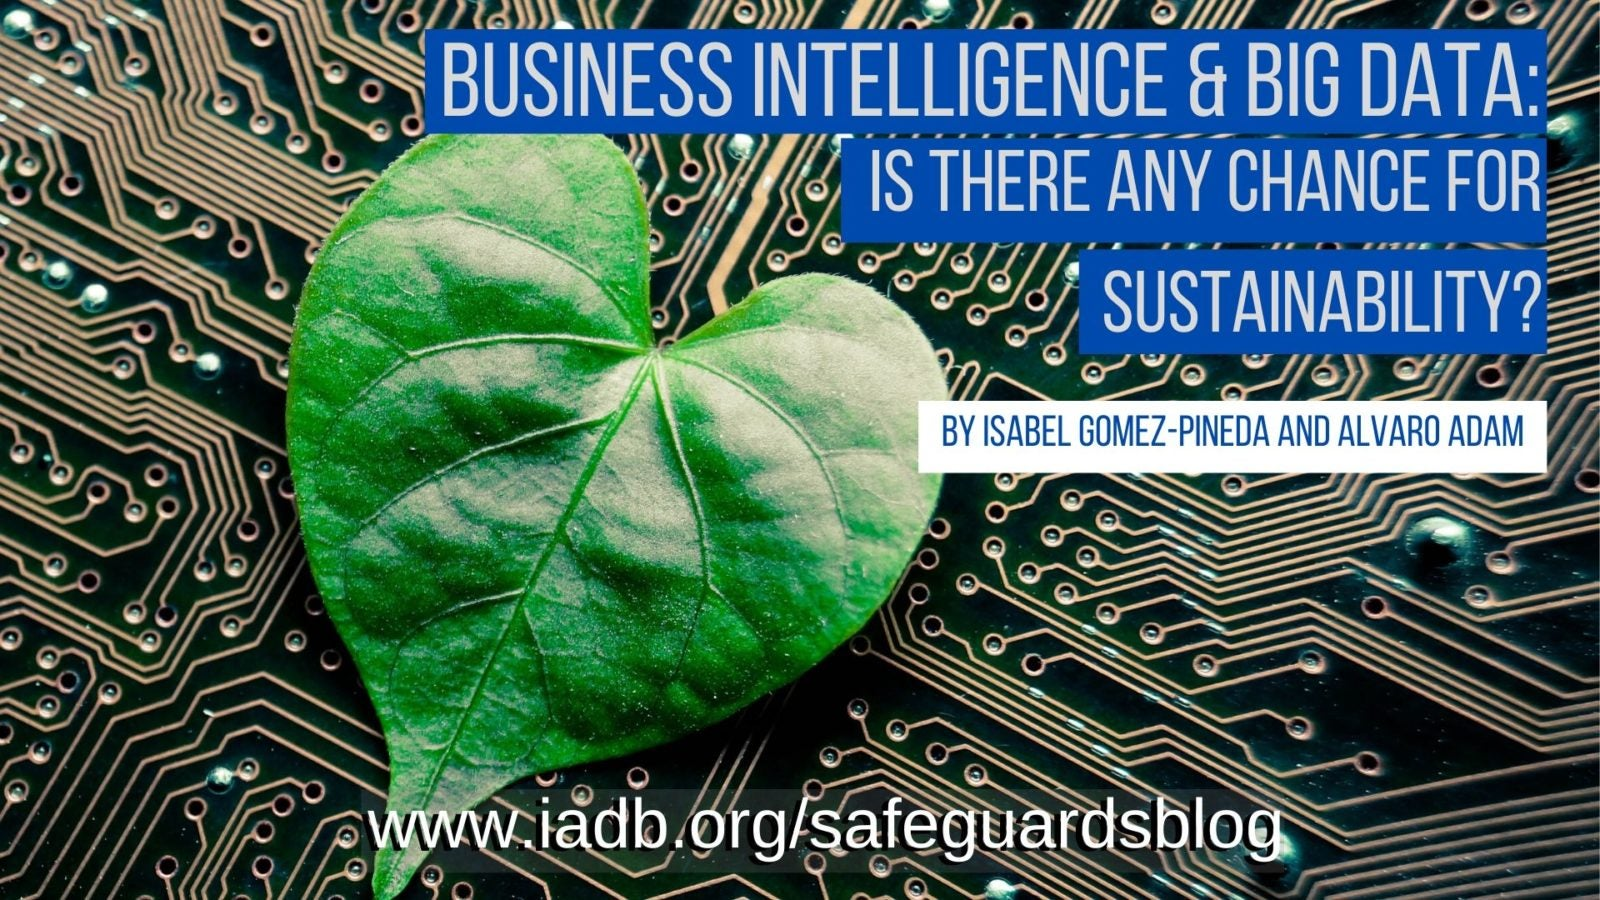 Business Intelligence & Big Data: Is there any chance for sustainability?